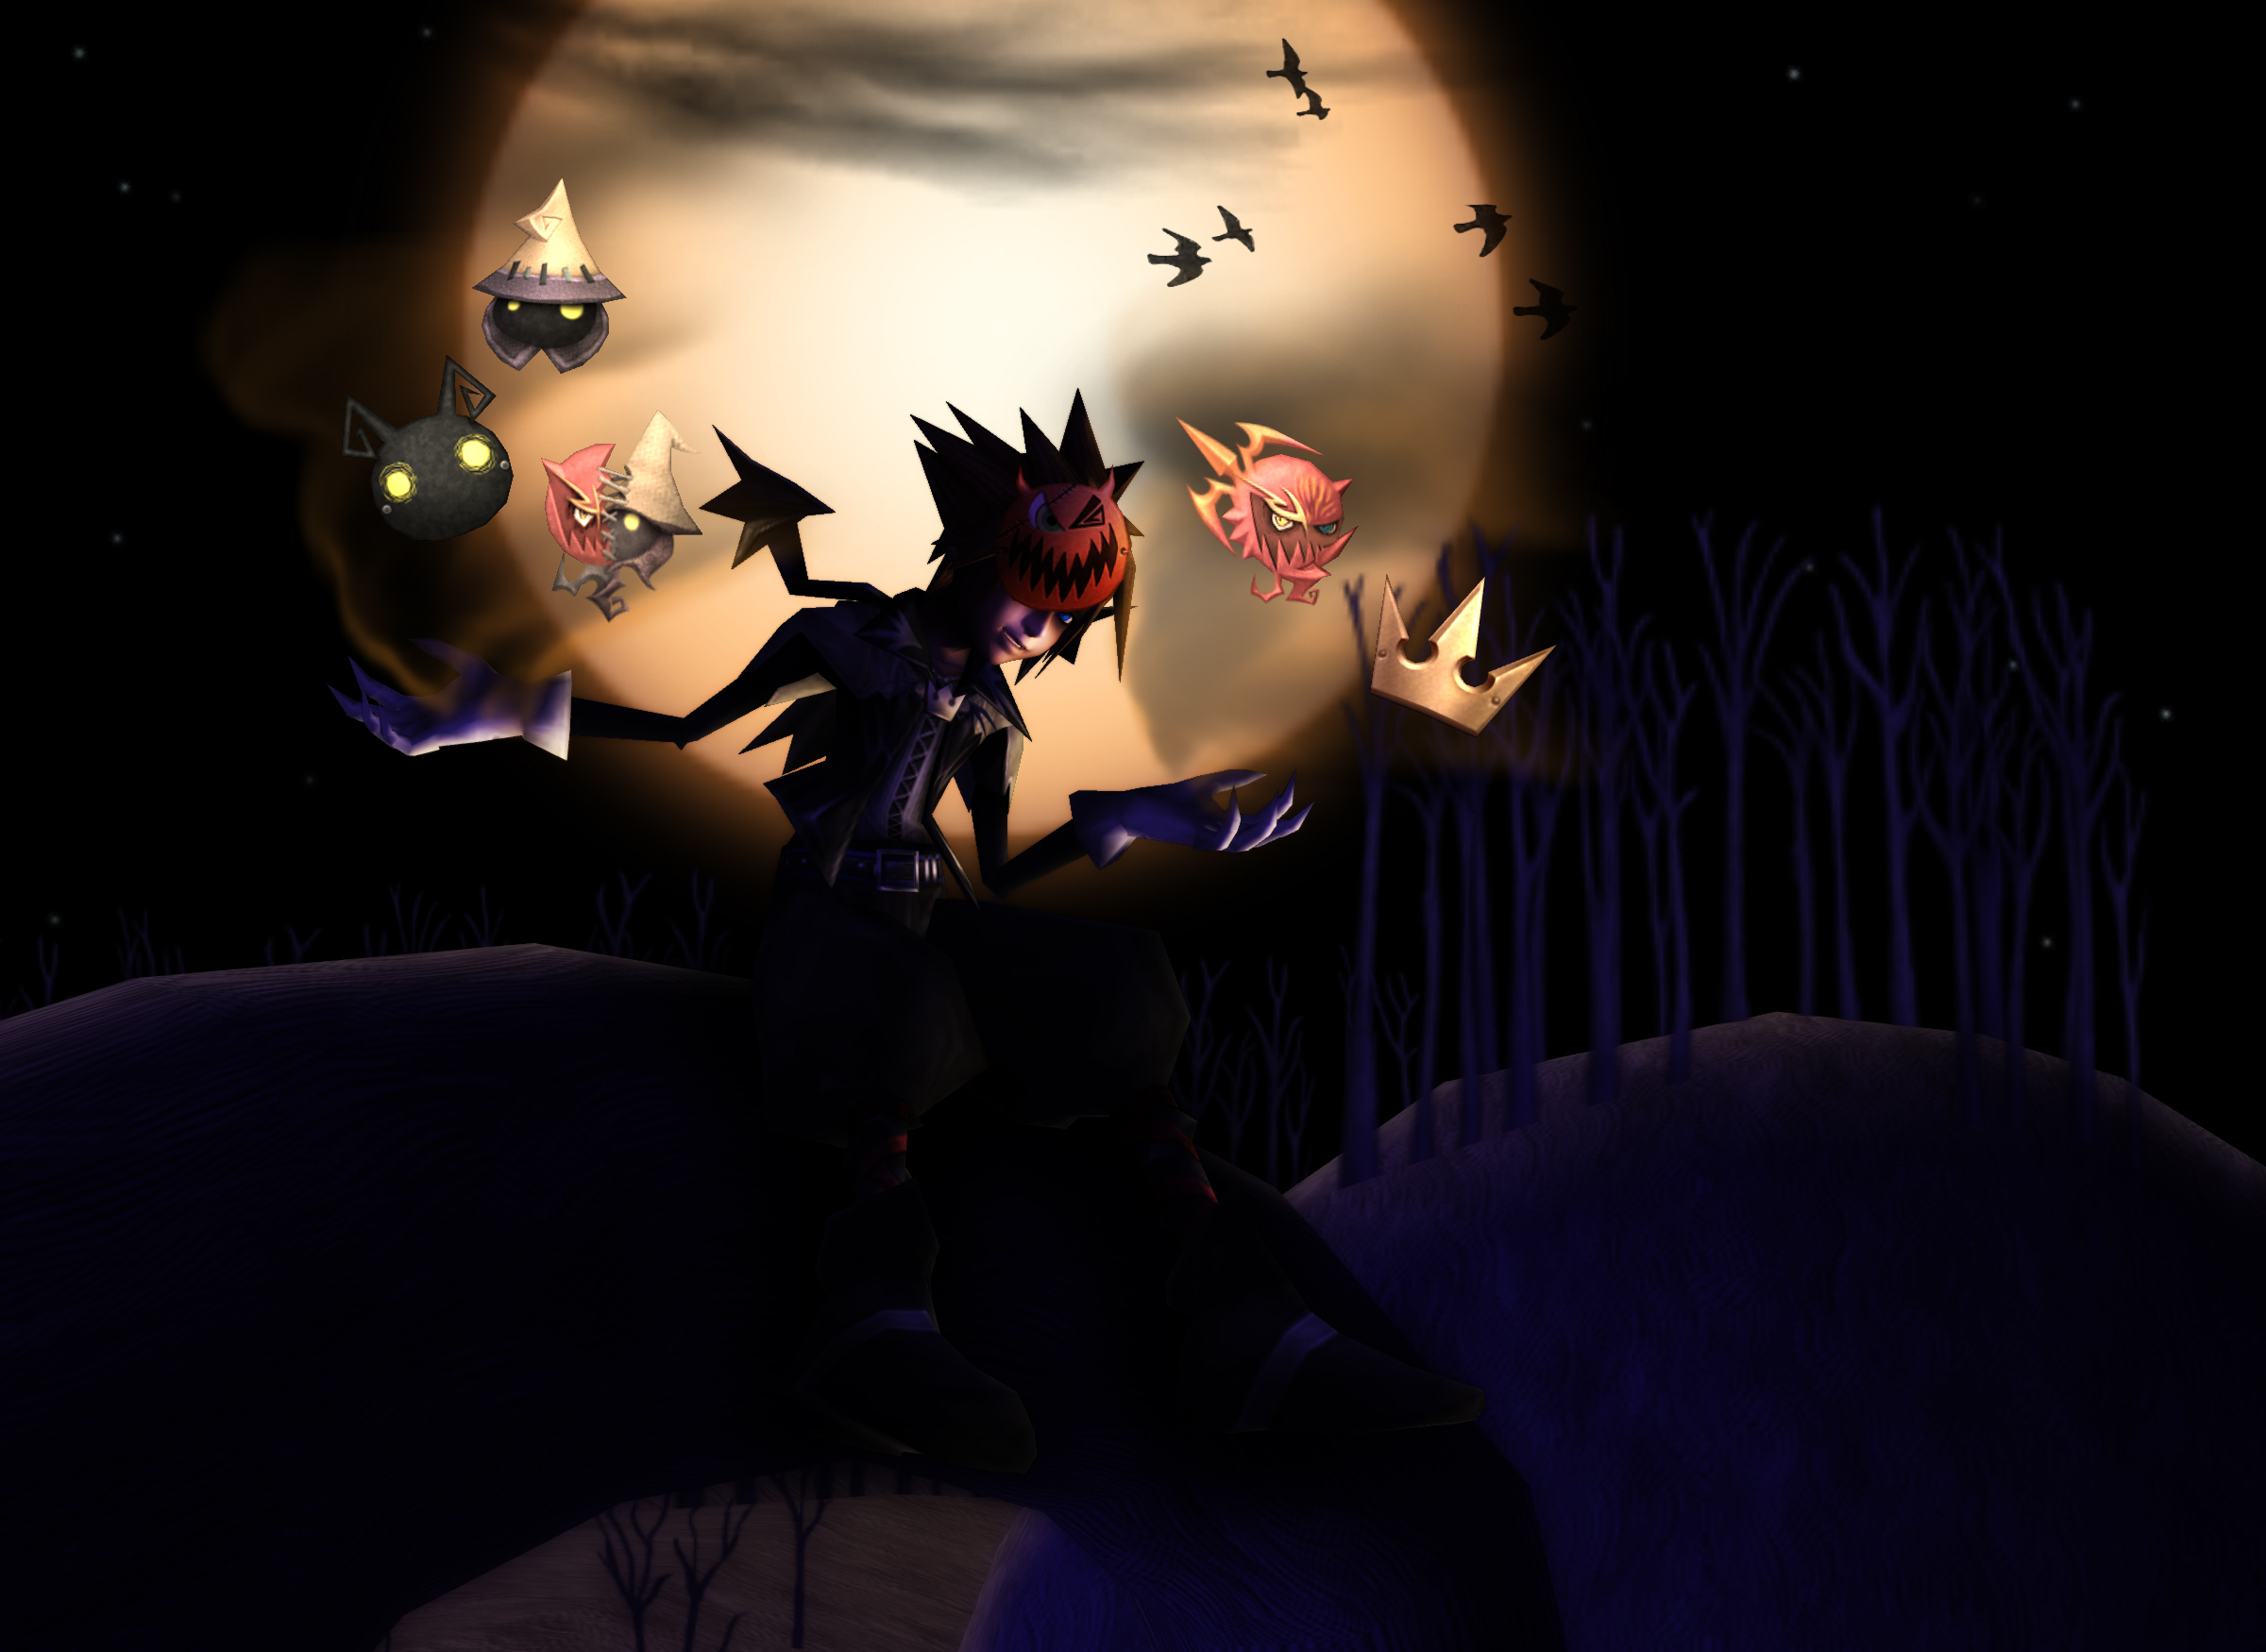 Halloween Town Sora Forms [XPS] by LexaKiness on DeviantArt